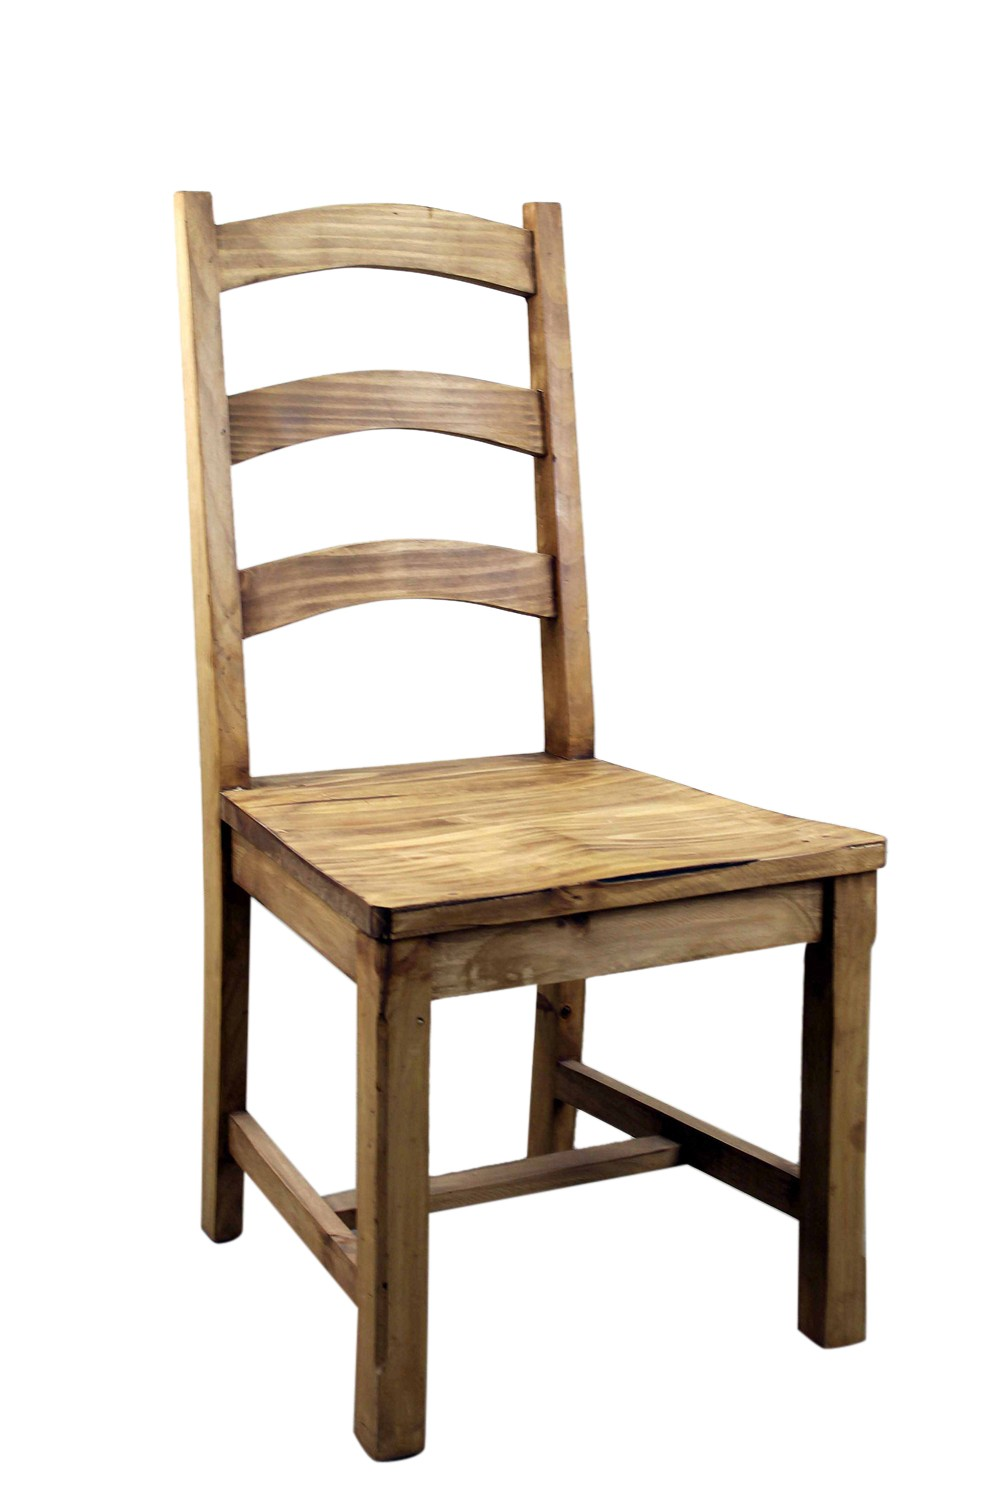 Vivere Pine Dining Chair  Mexican Rustic Furniture and